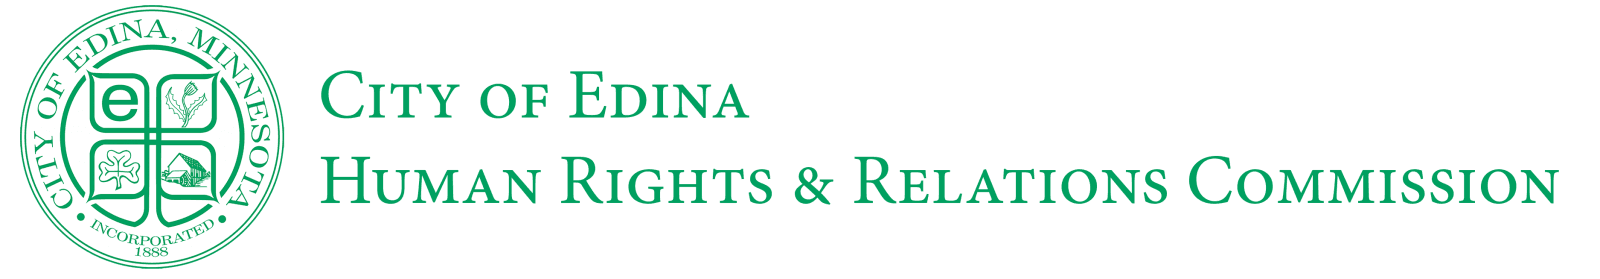 Human Rights & Relations Commission